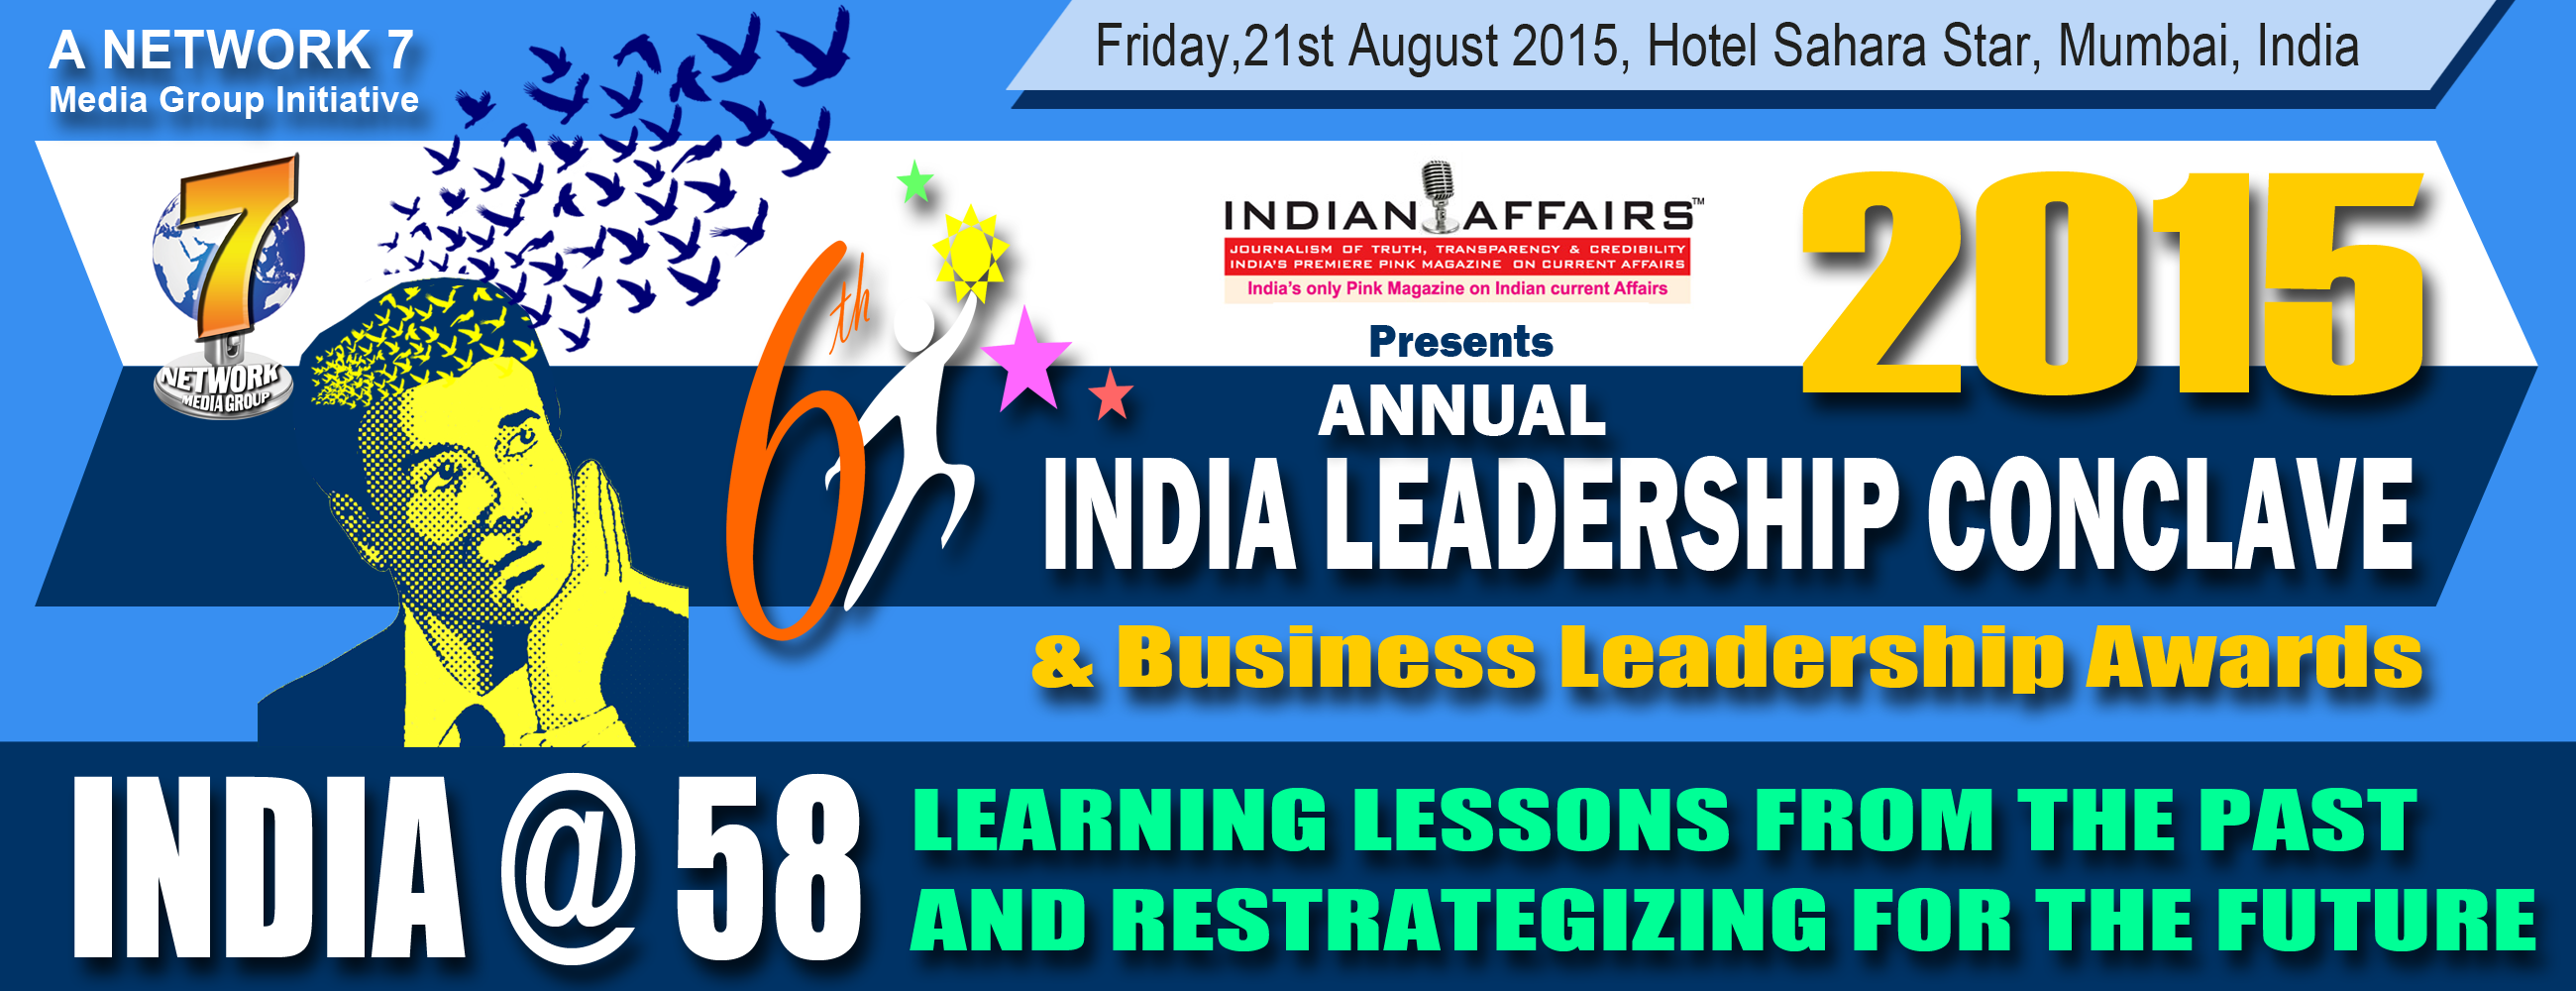 6th Annual India Leadership Conclave  Indian Affairs Business Leadership Awards 2015